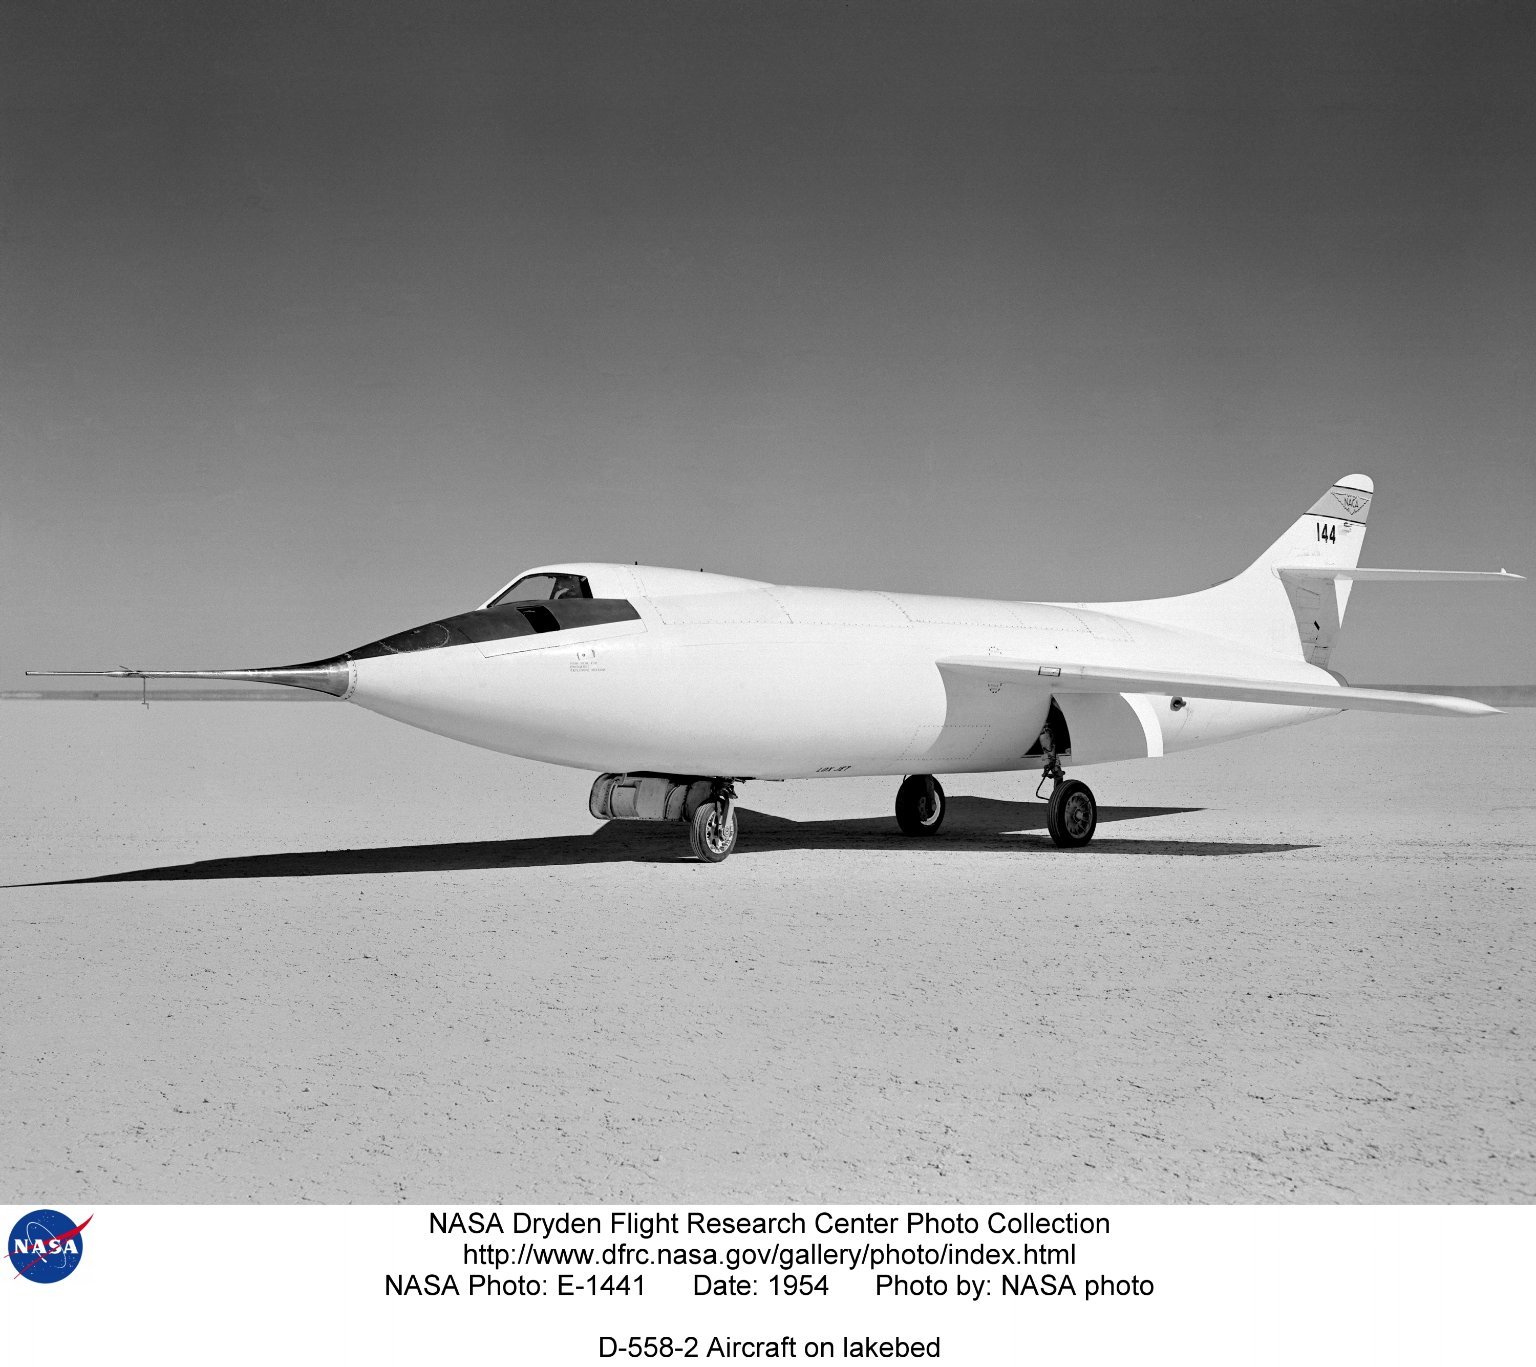 D-558-2 Aircraft on lakebed